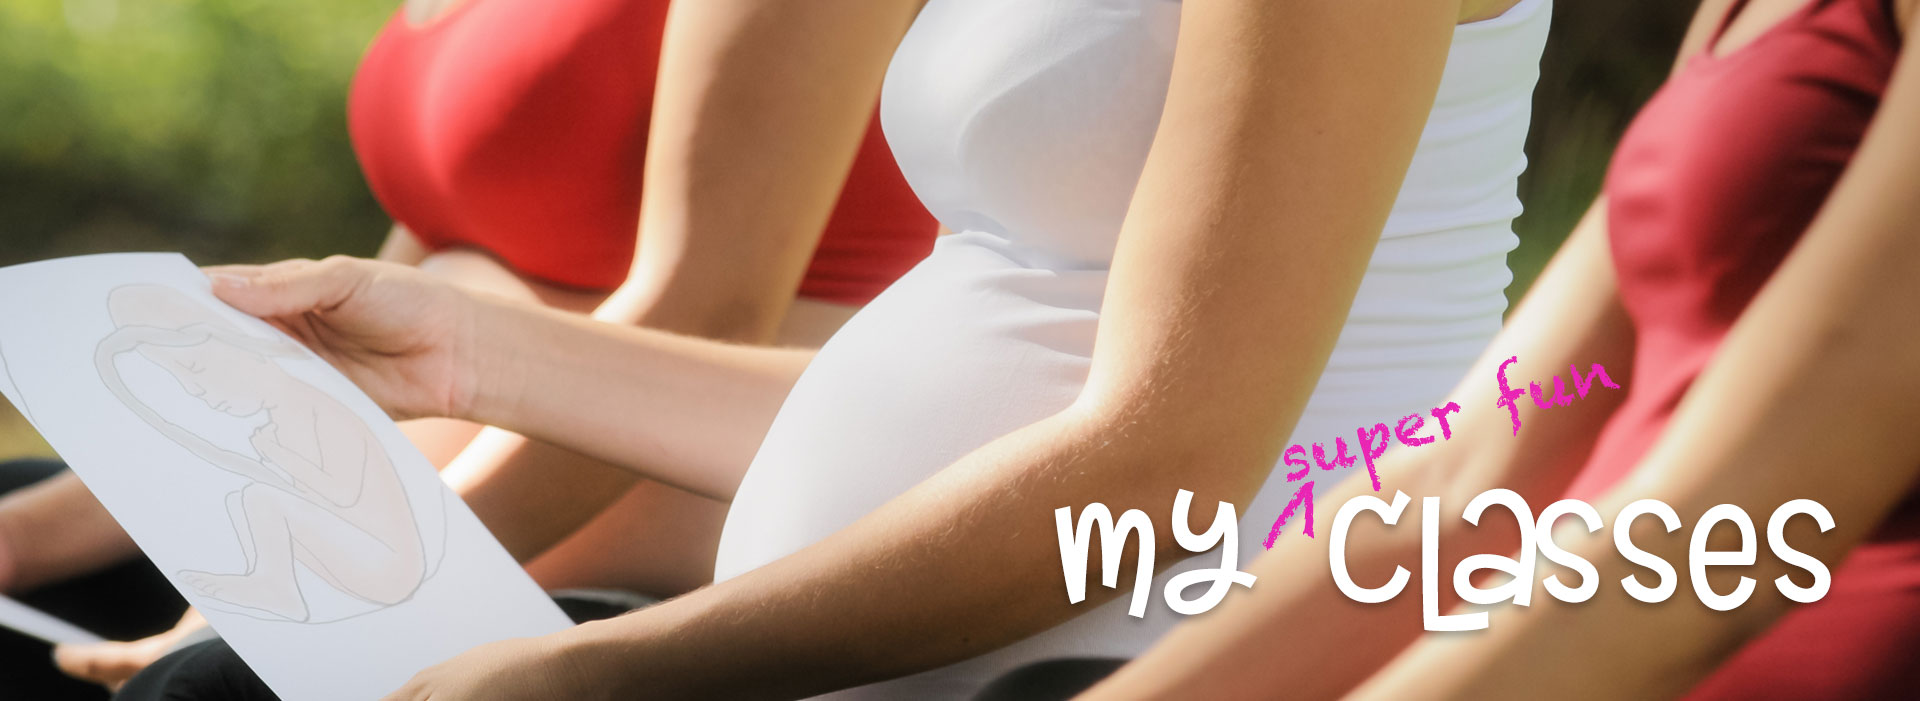 My Classes - Belly Laughs Birth Services - Maggie Jennings - Temecula Murrieta